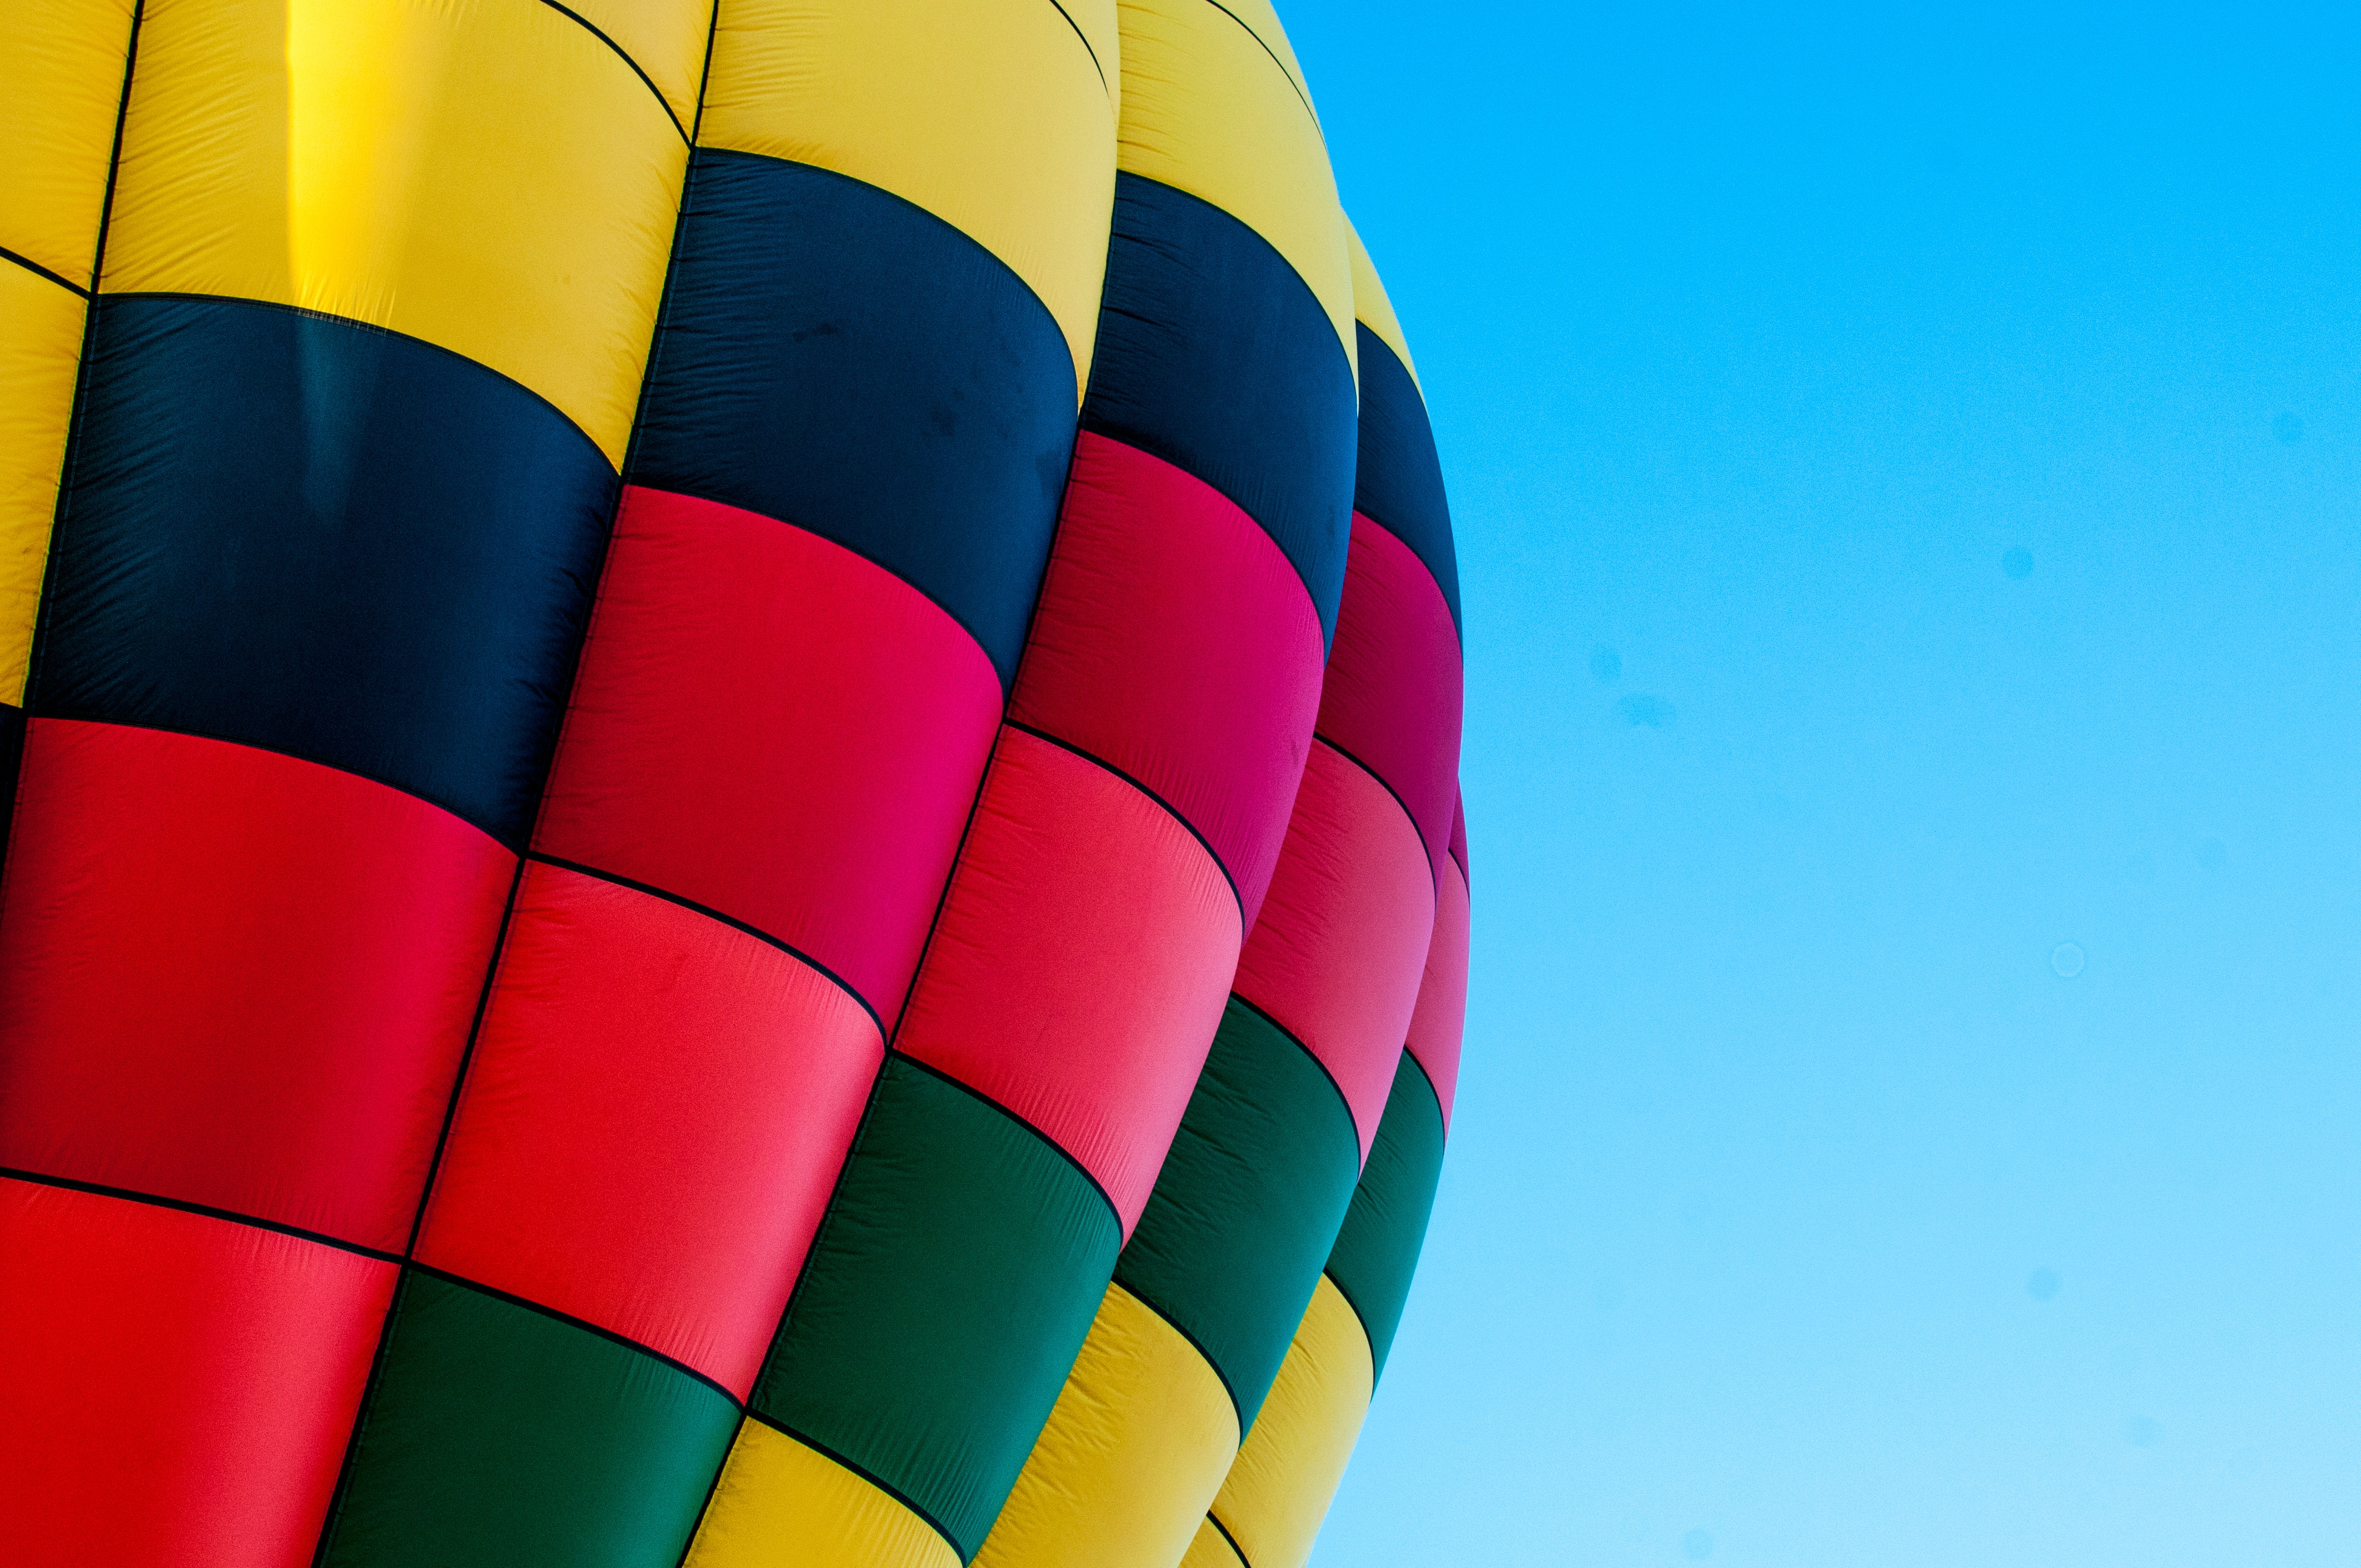 The colorful surface of a hot air balloon against a blue sky